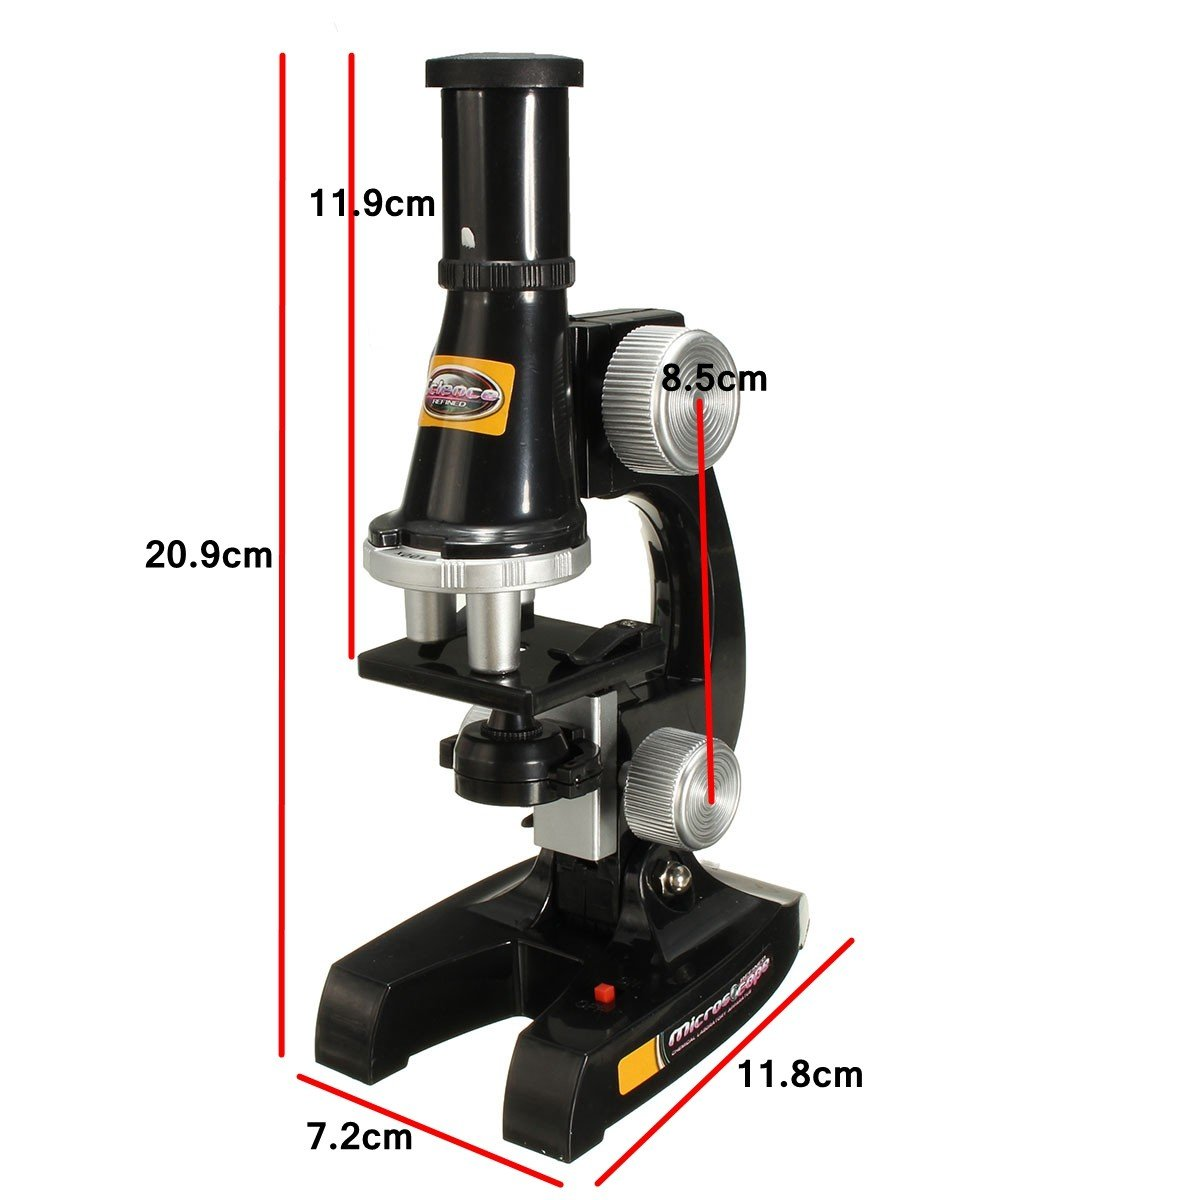 New Scientific Eductional Experiment Microscope Set Optical Supplies Science Lab Toy By Letbo